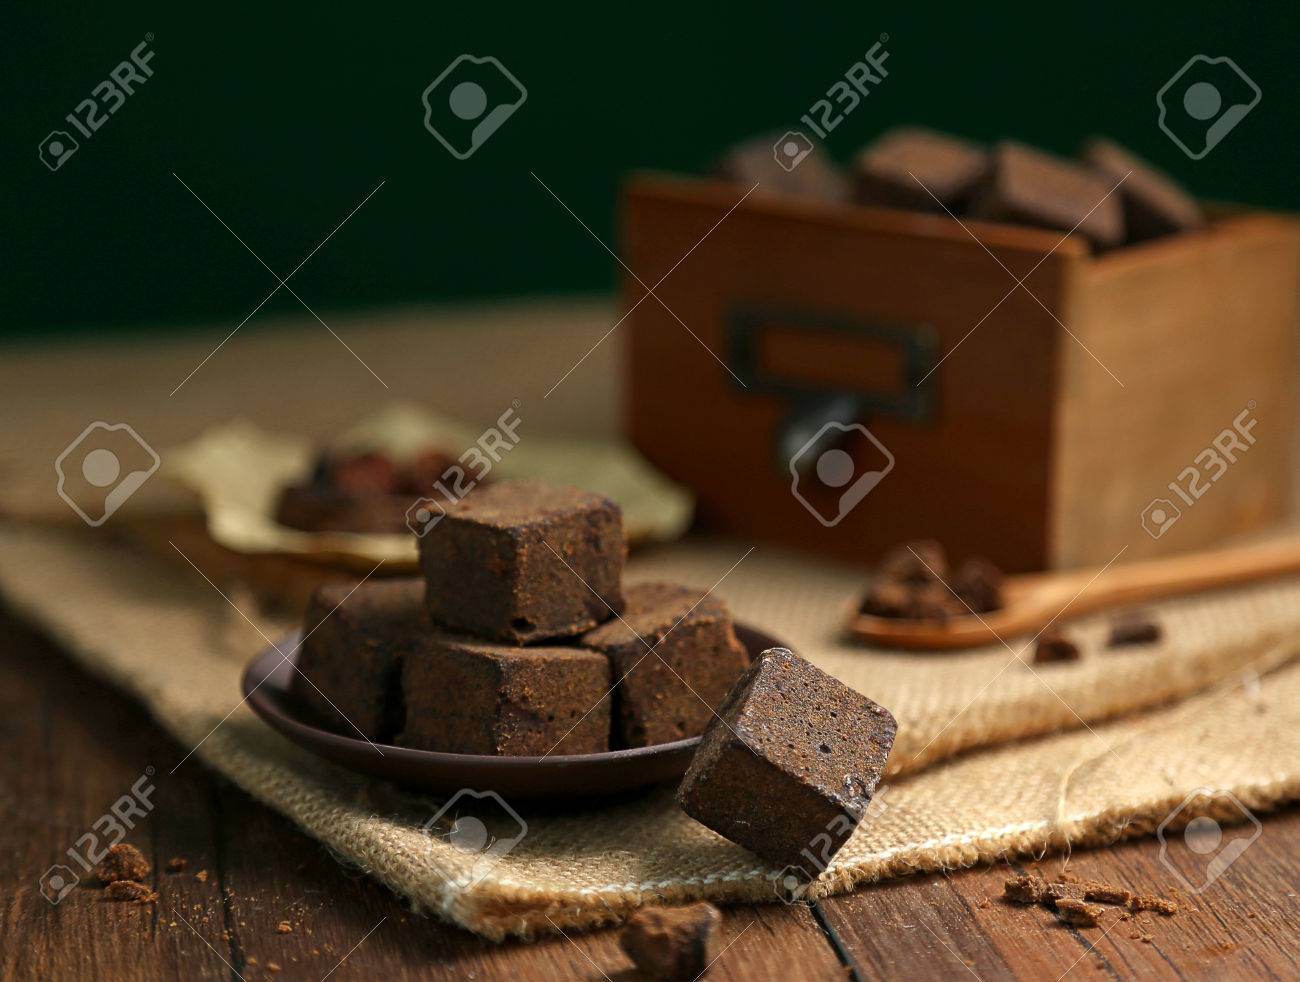 Brown sugar chunks in wooden boxes and plates - 53973789